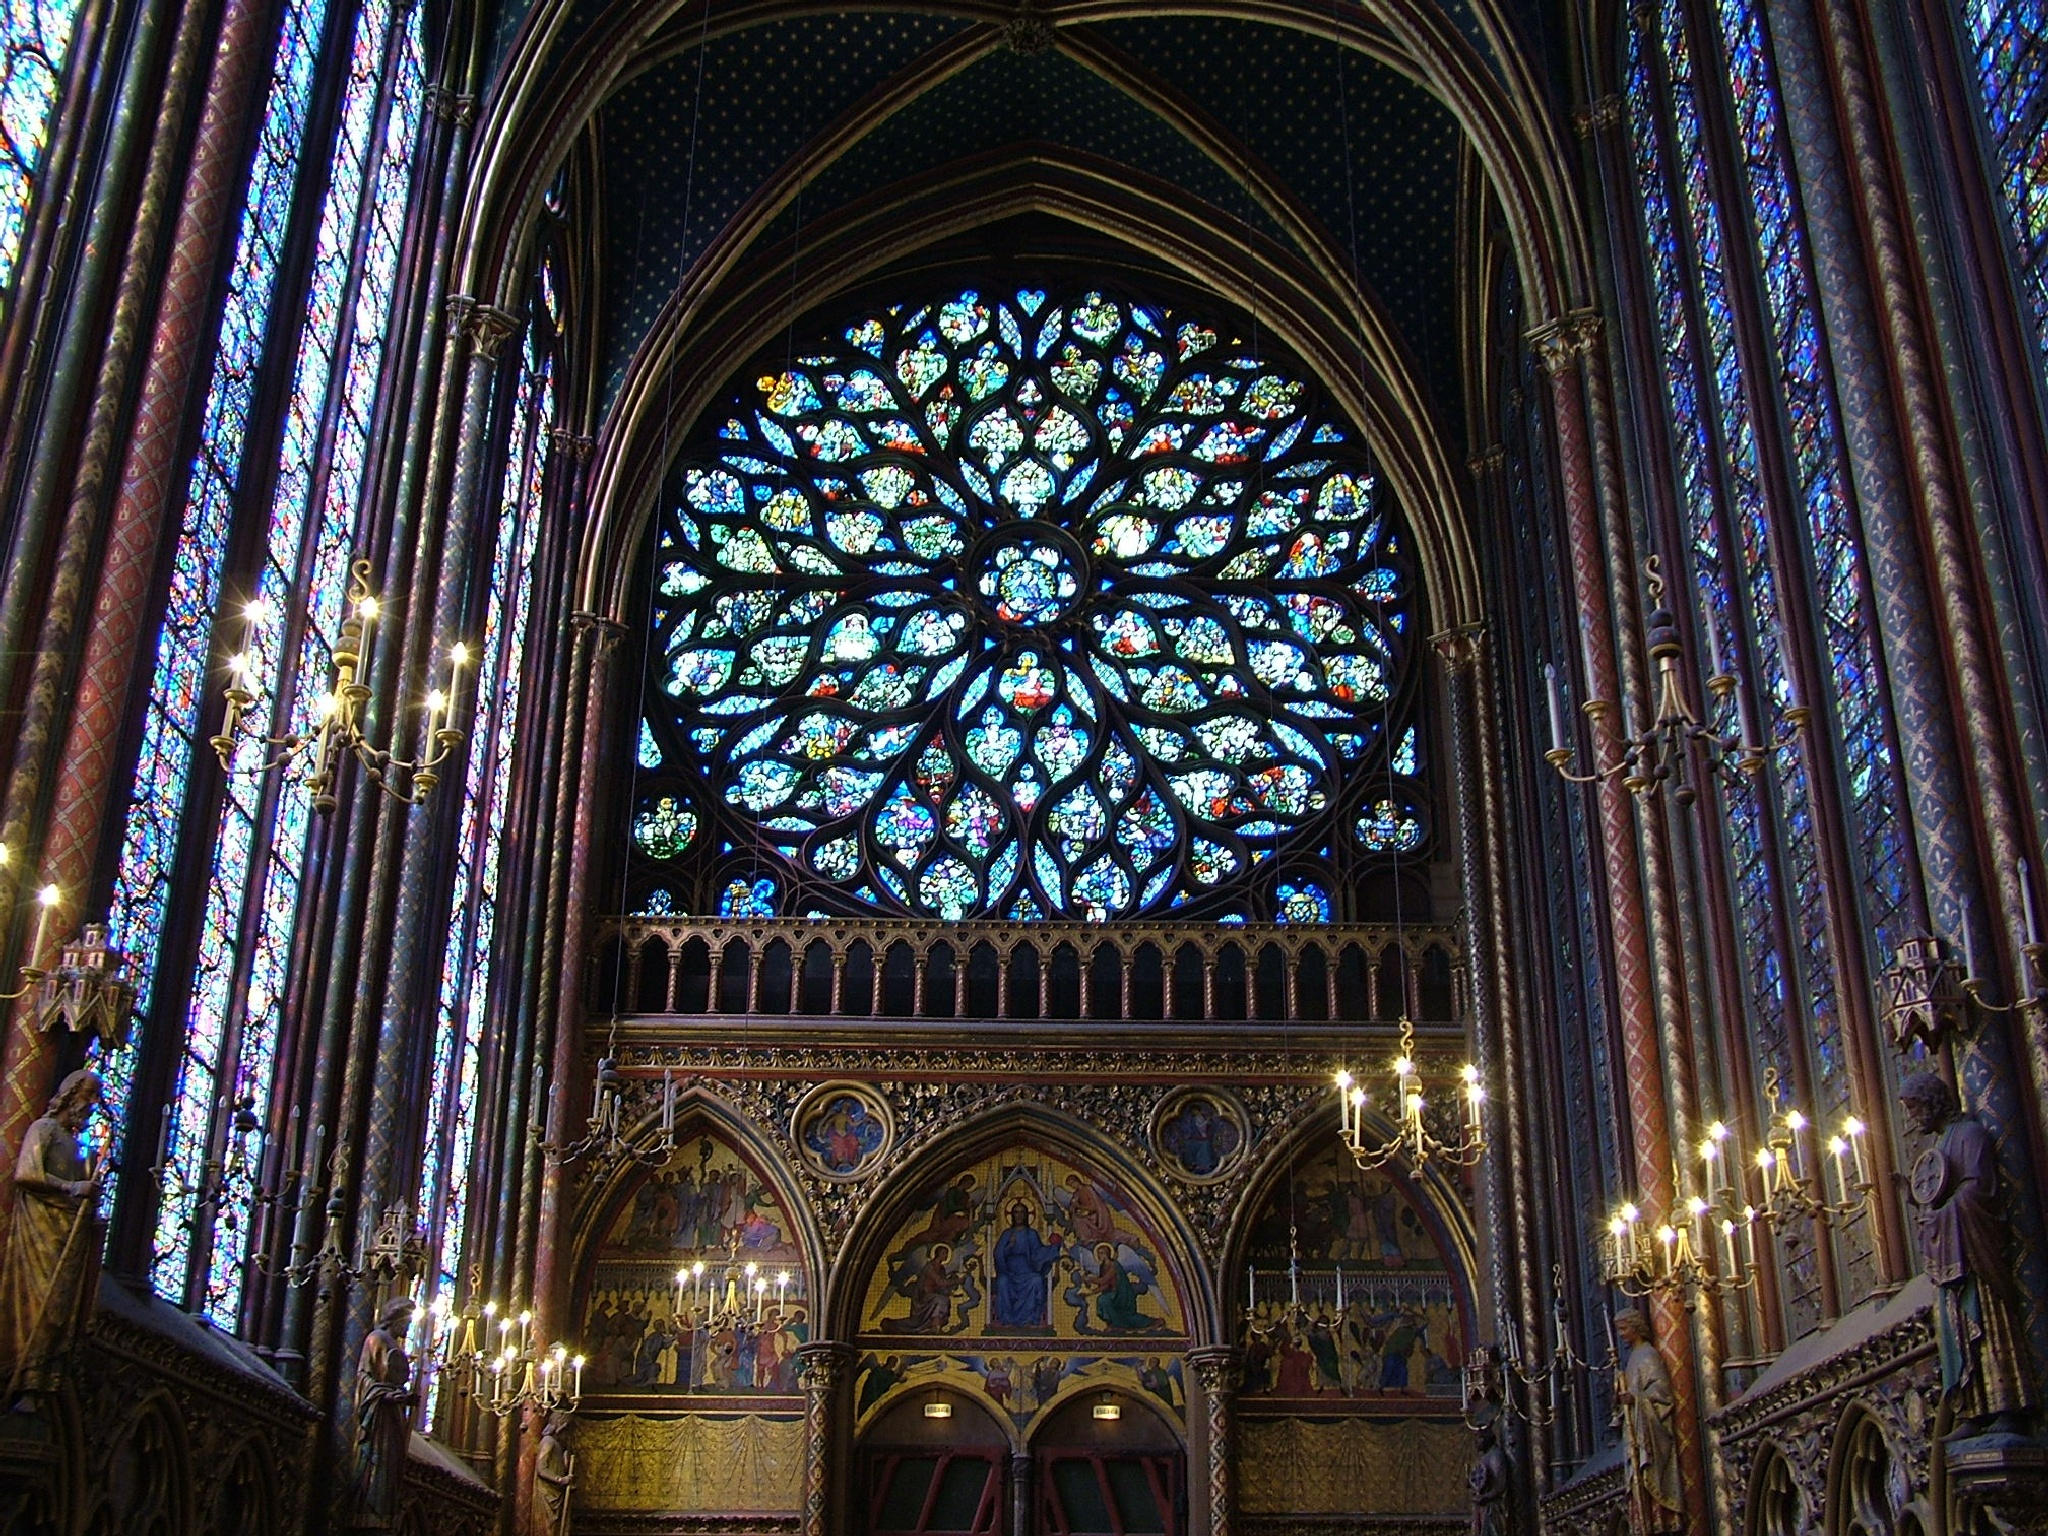 St Chapelle, Paris by Manuel Villanueva